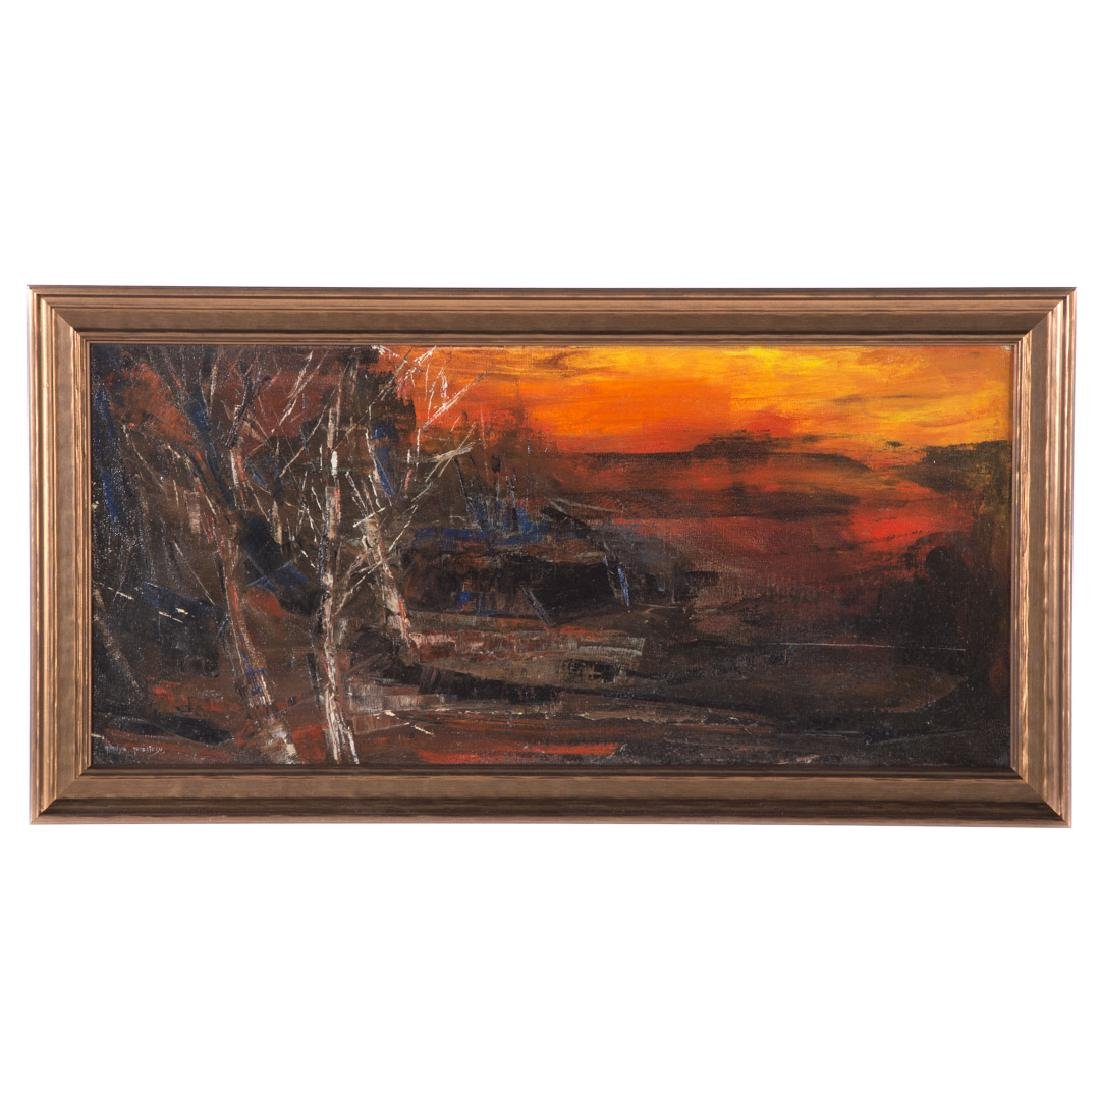 Gladys Hack Goldstein. Sunset, oil on canvas